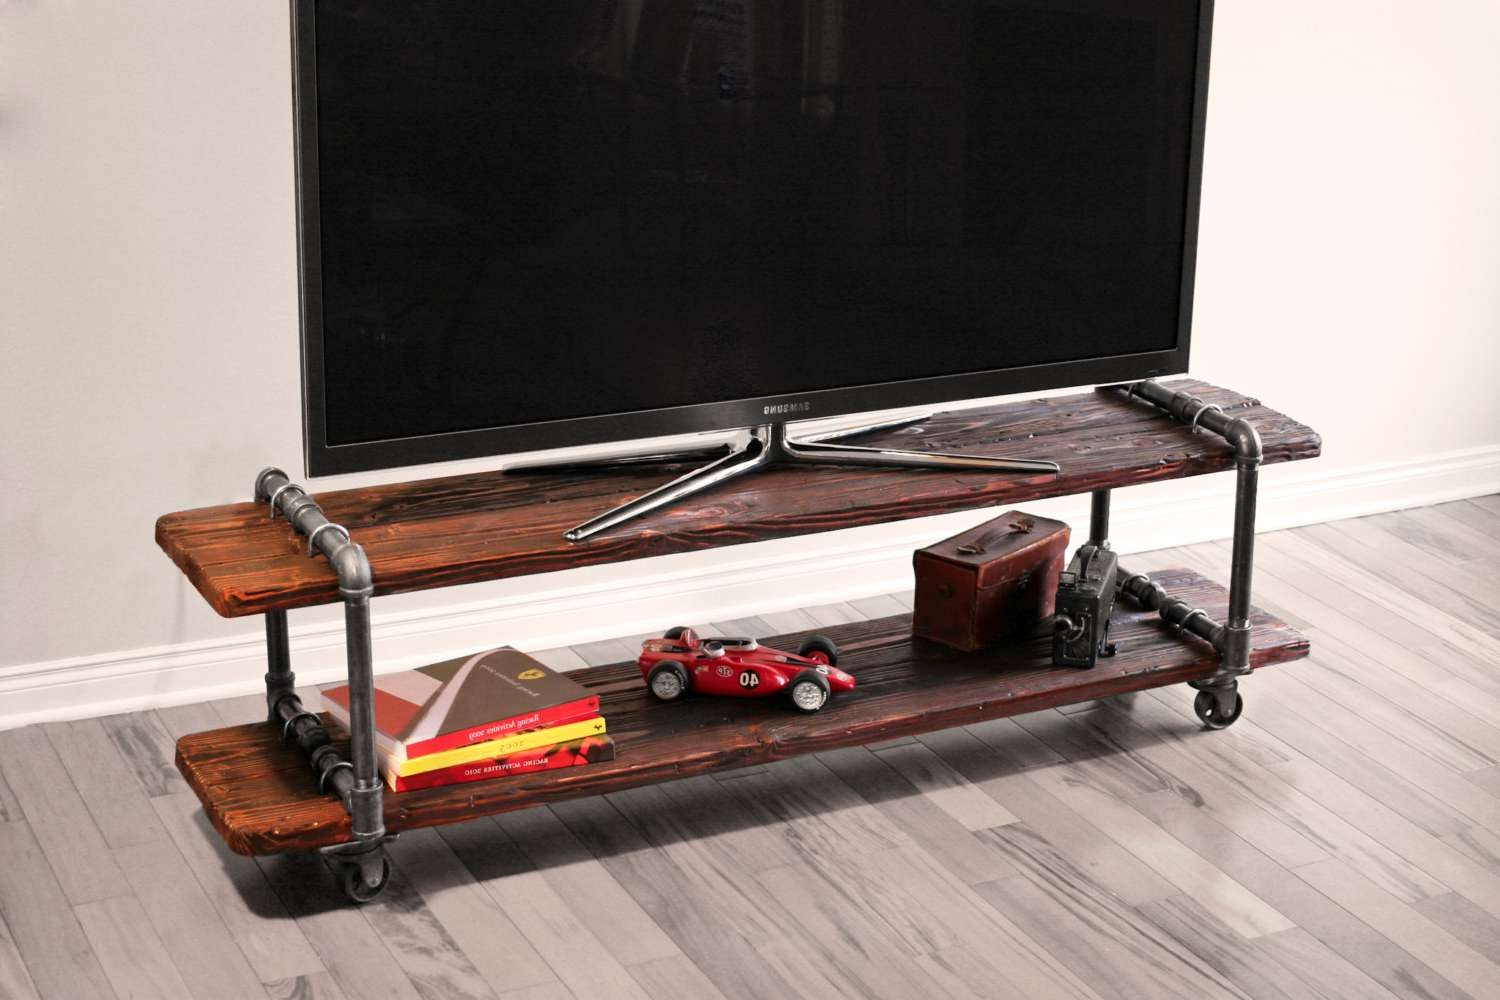 Cool Diy Portable Industrial Tv Stands Made From Pipe And Intended For Industrial Tv Cabinets (View 8 of 20)